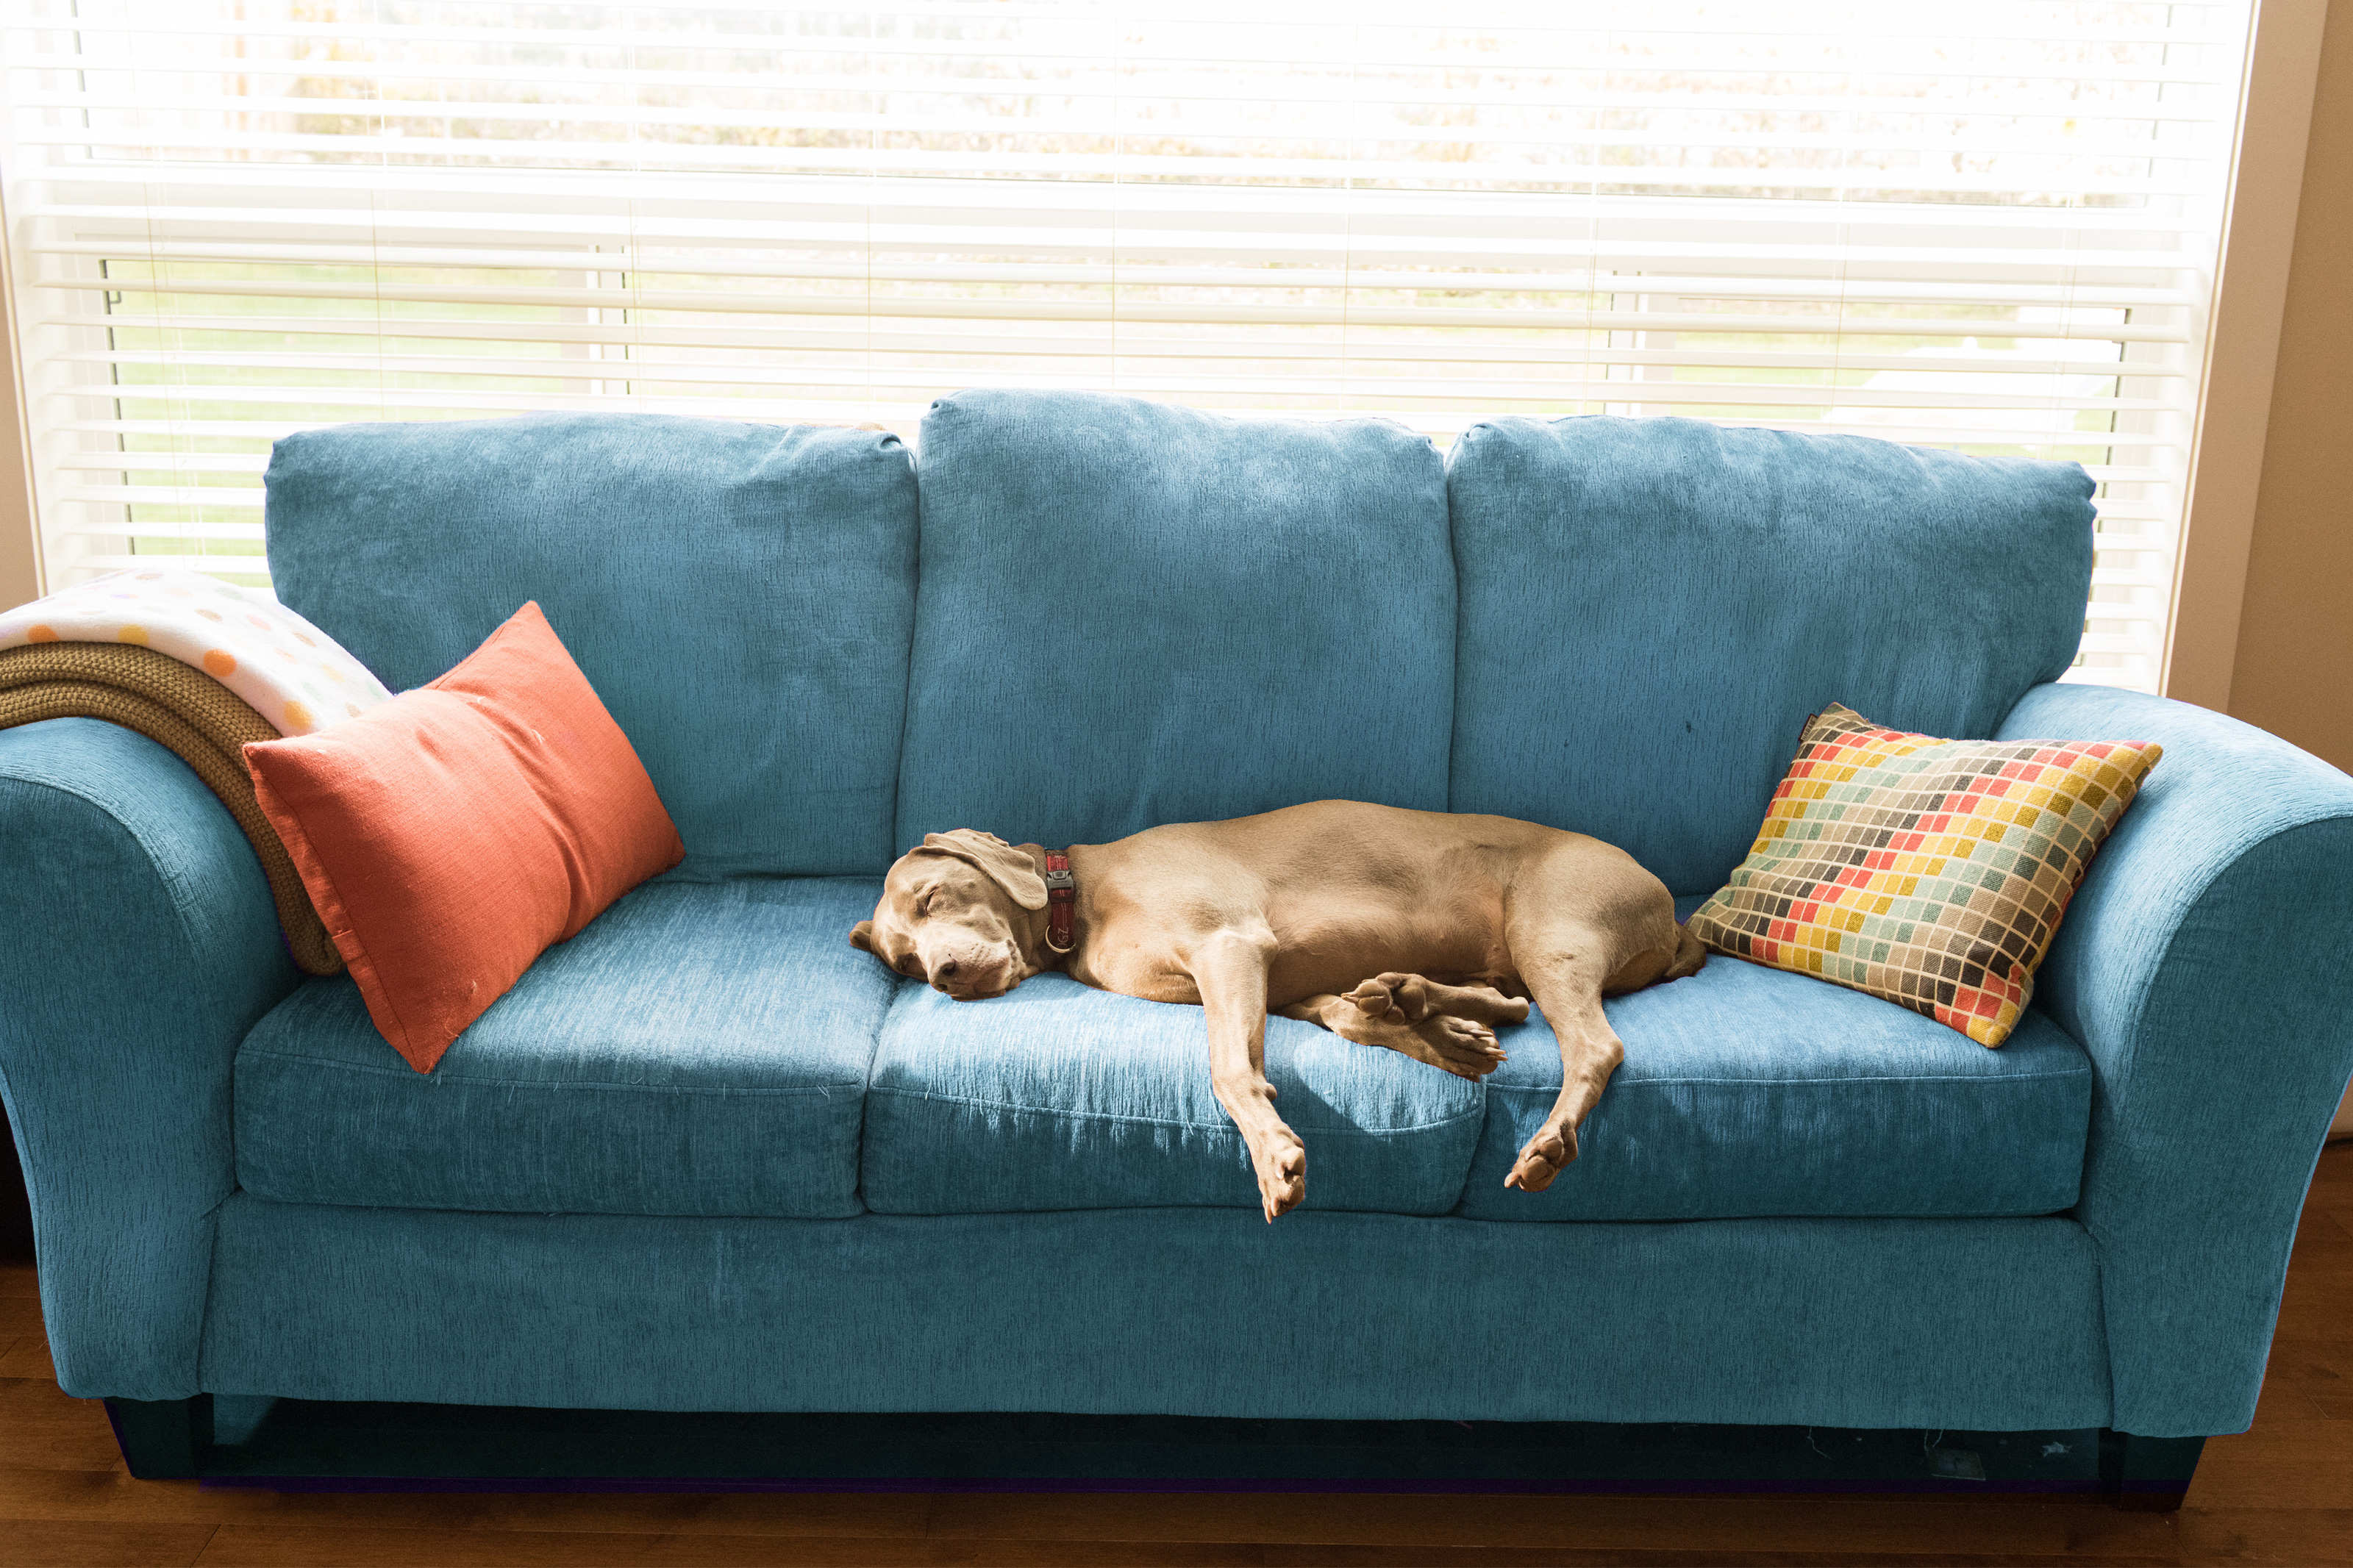 Dog sleeping on the couch